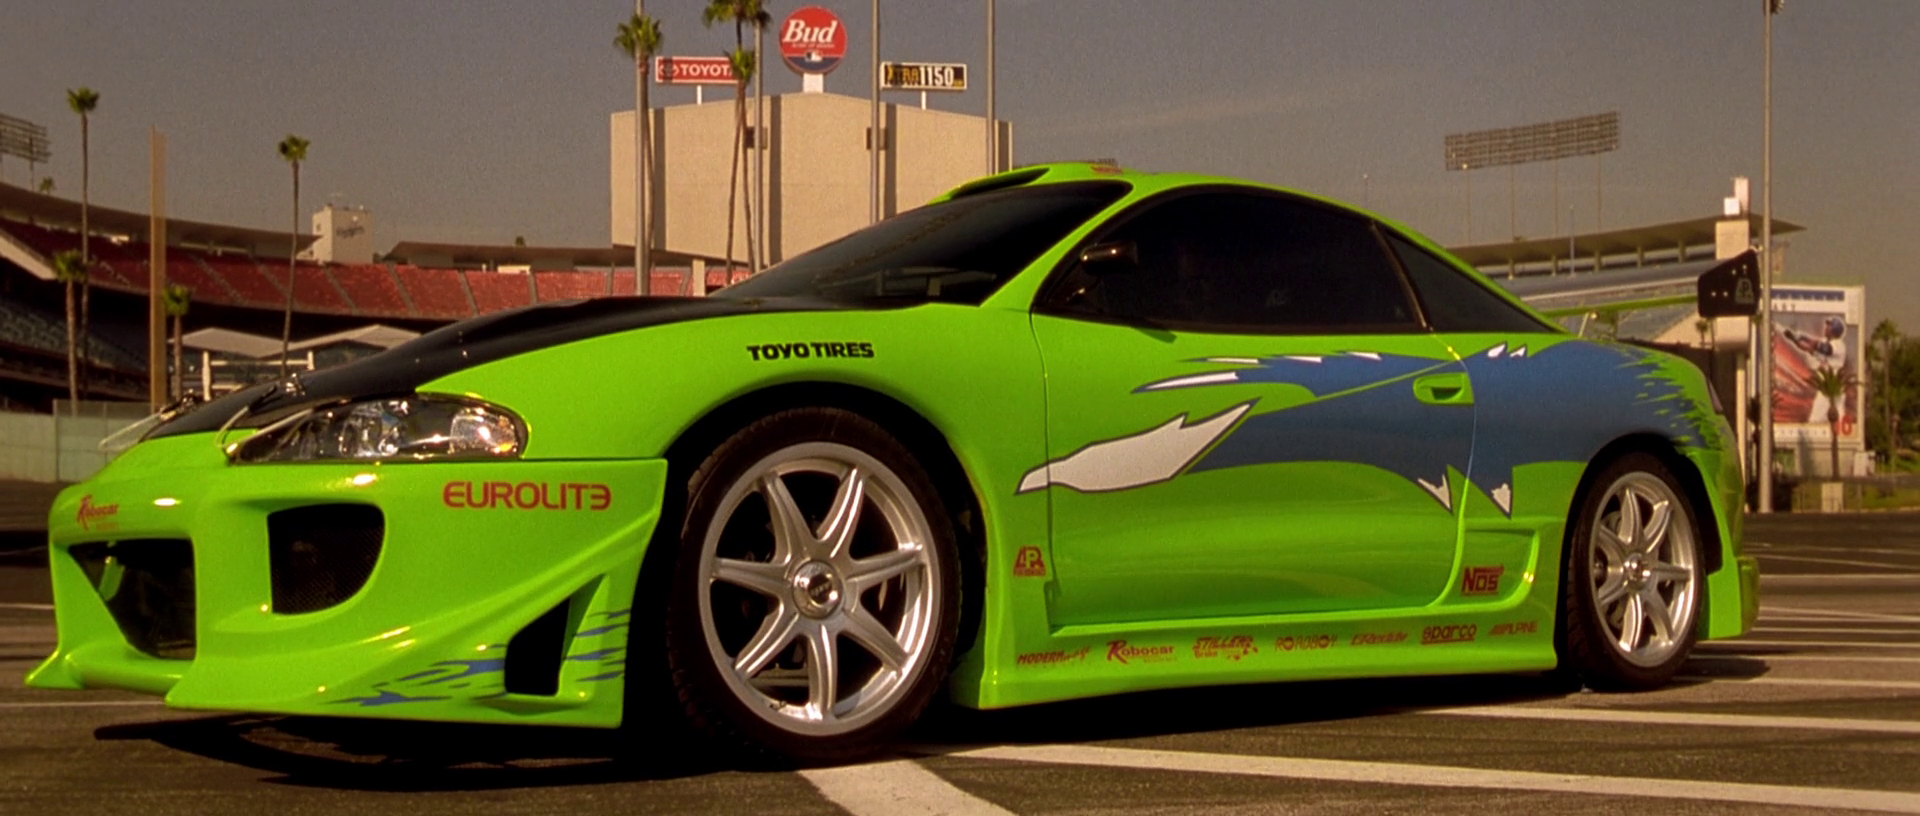 Image - 1995 Mitsubishi Eclipse.png | The Fast and the Furious Wiki